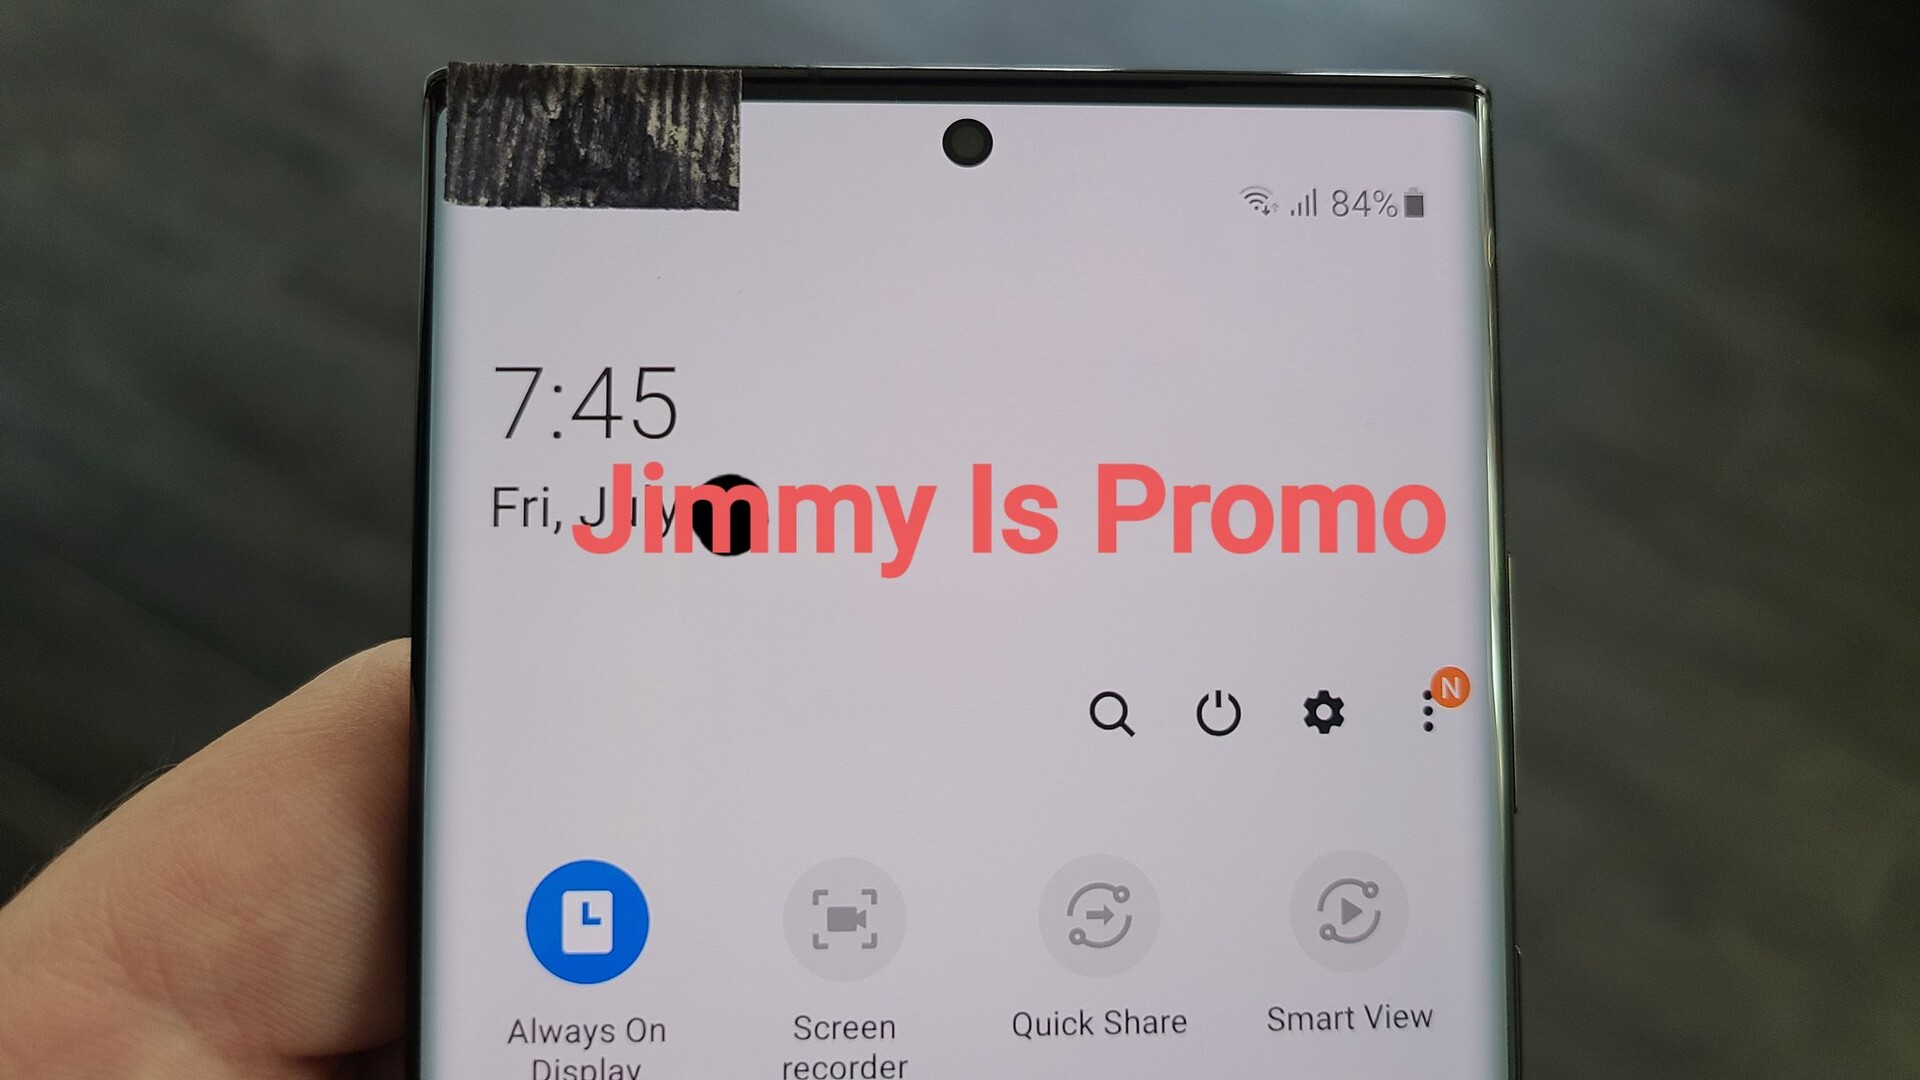 Samsung Galaxy Note 20 Ultra Live Images Leaked Showing Subtle Differences To The Samsung Galaxy Note 10 Plus Notebookcheck Net News